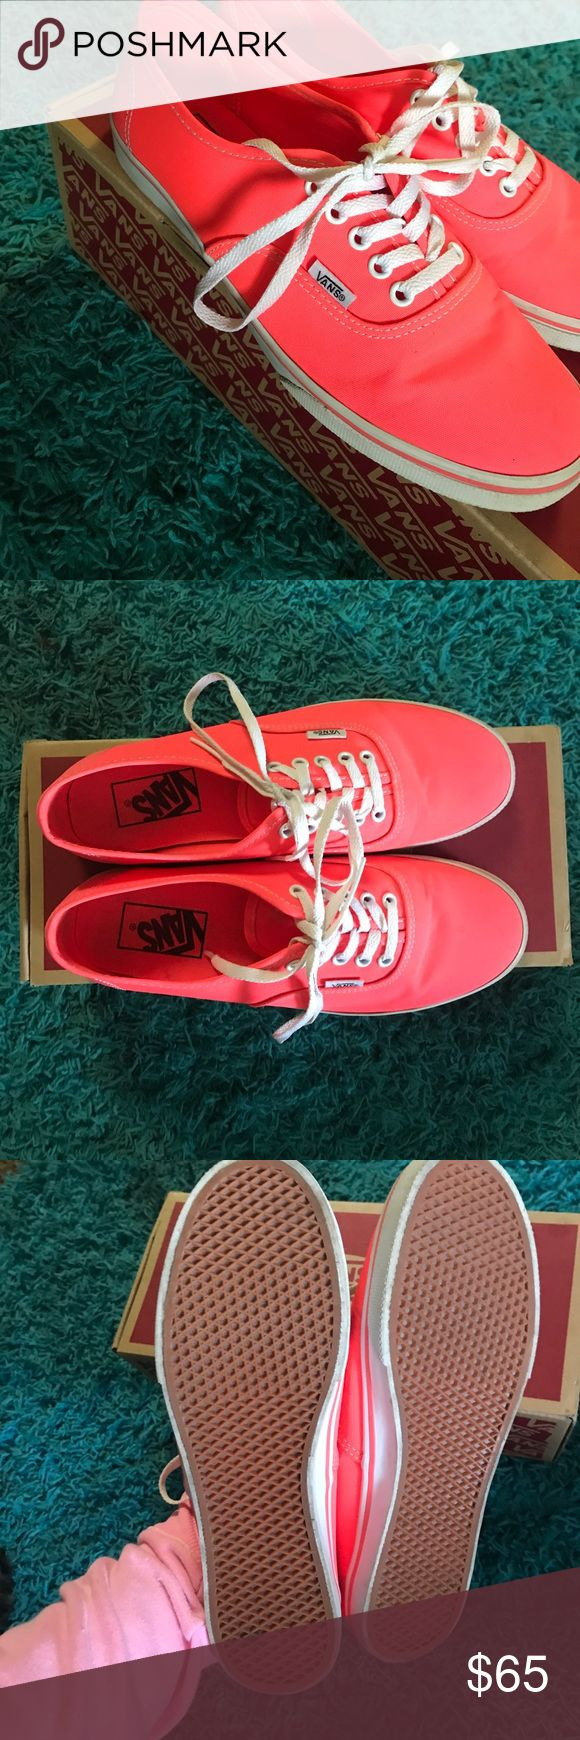 Coral vans Size 7.5 women's coral / pink low rise vans! New in box and super cute! New in box! Vans Shoes Sneakers